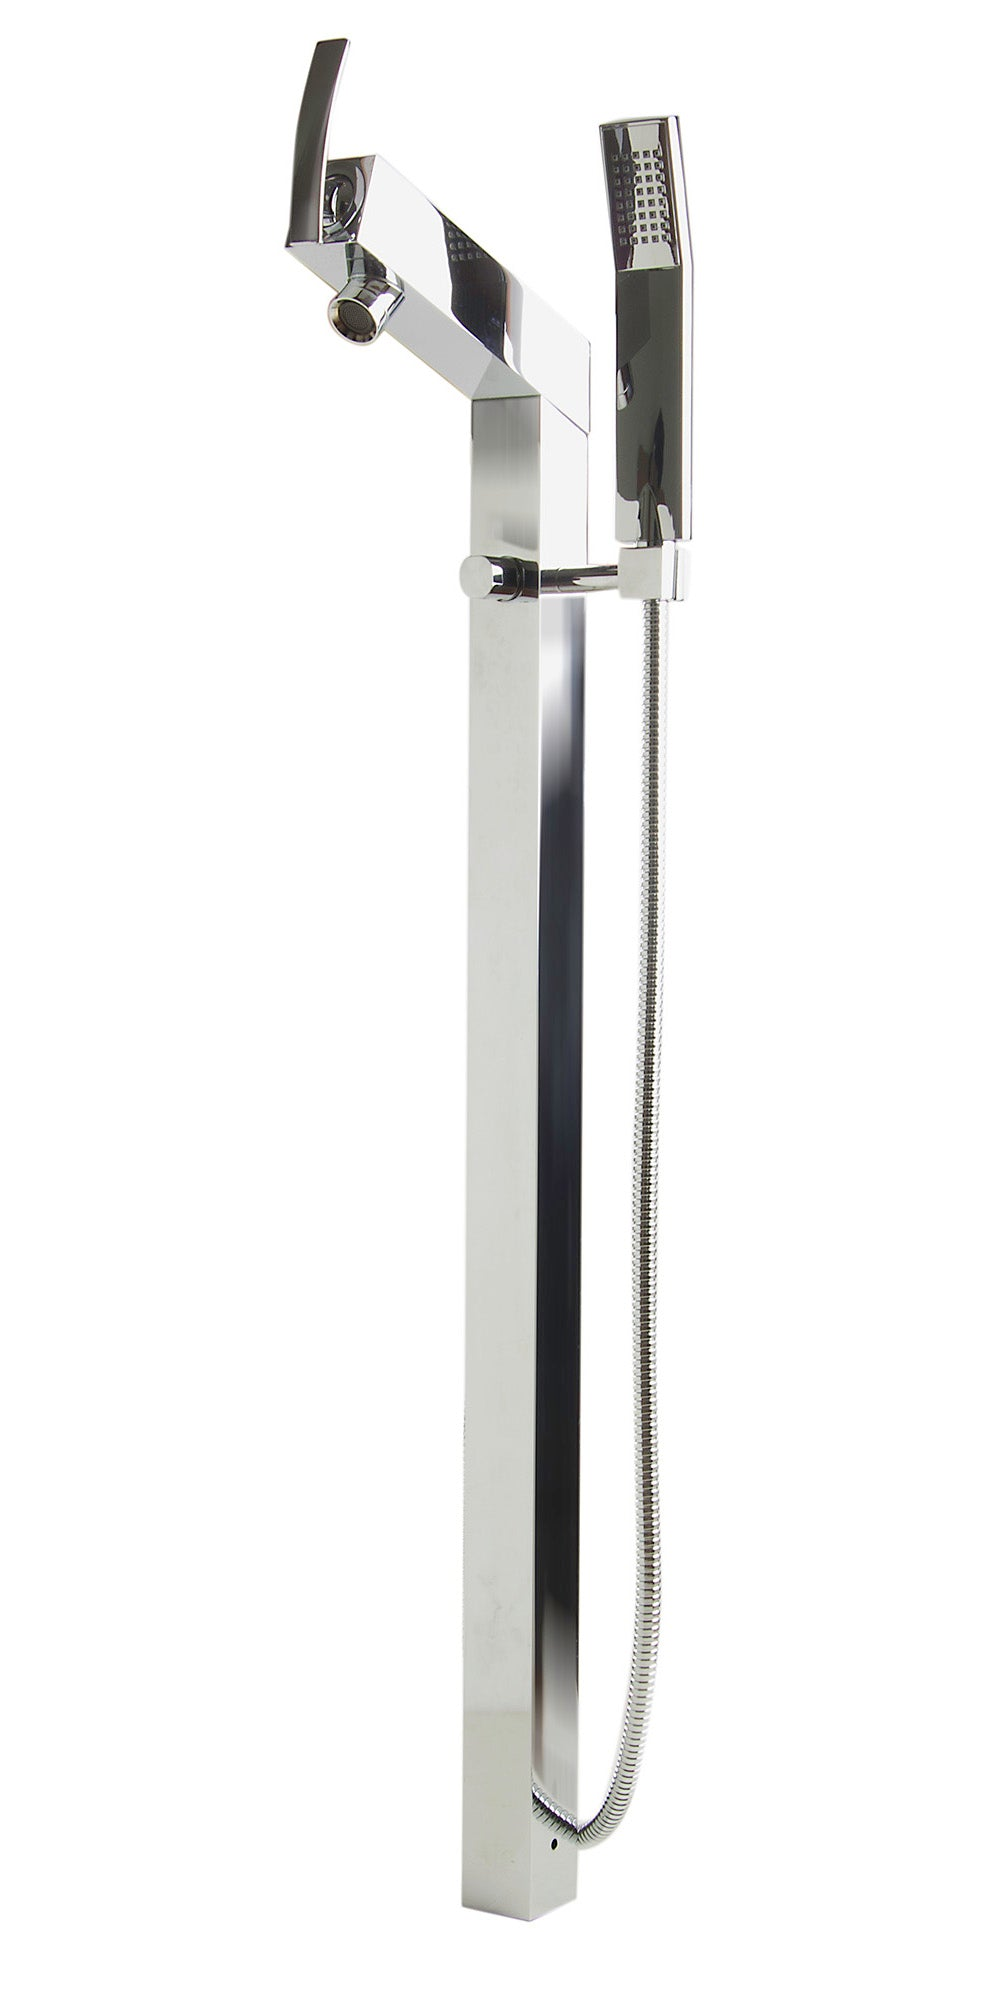 ALFI Floor Mounted Tub Filler + Mixer /w additional Hand Held Shower Head - FaucetMart